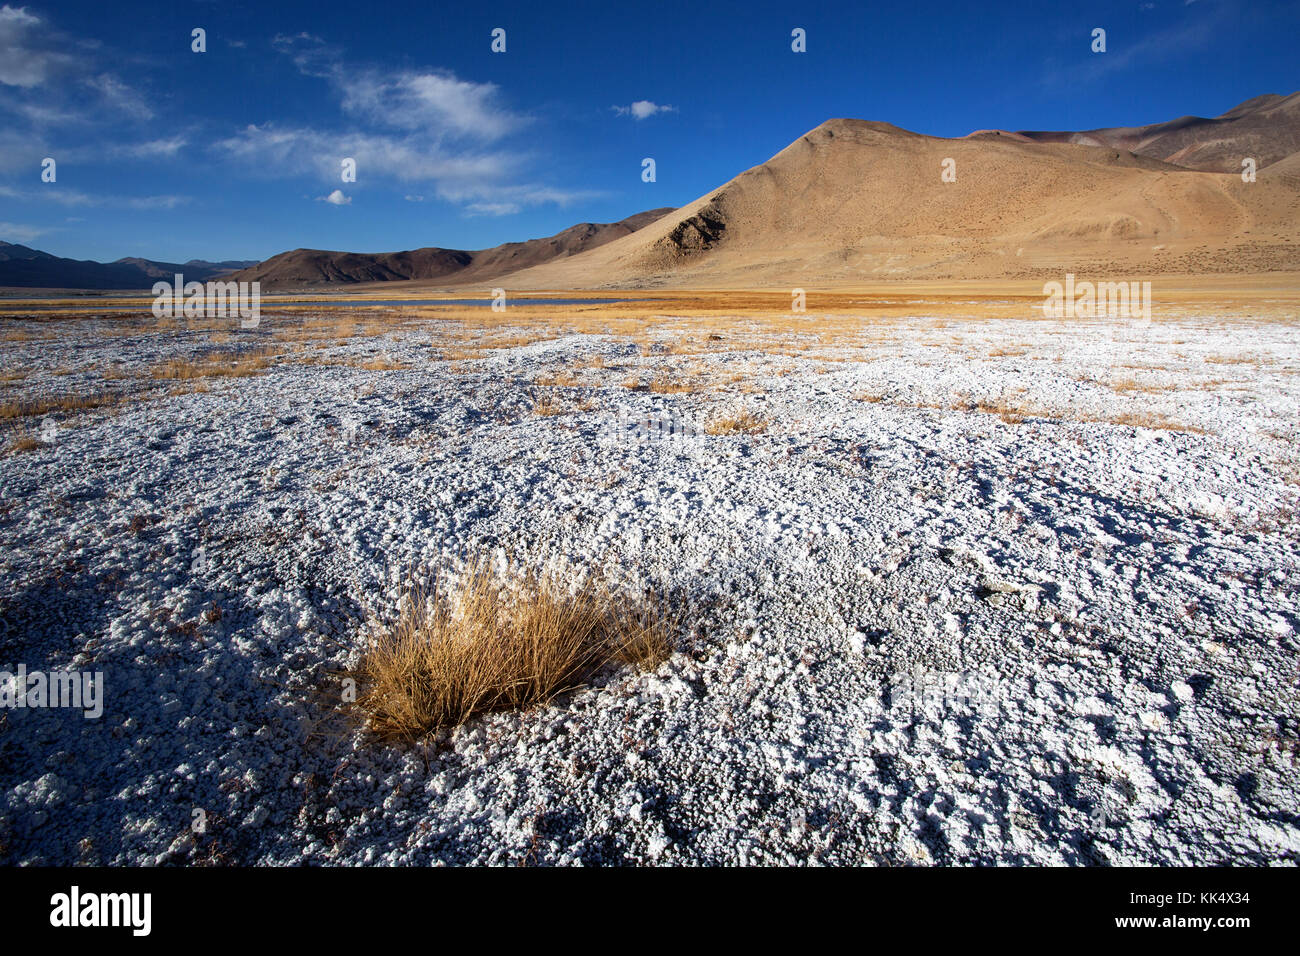 Barren landscape and layers of salt on a clear autumn day at a fluctuating salt lake Tso Kar, Ladakh, India - Stock Image